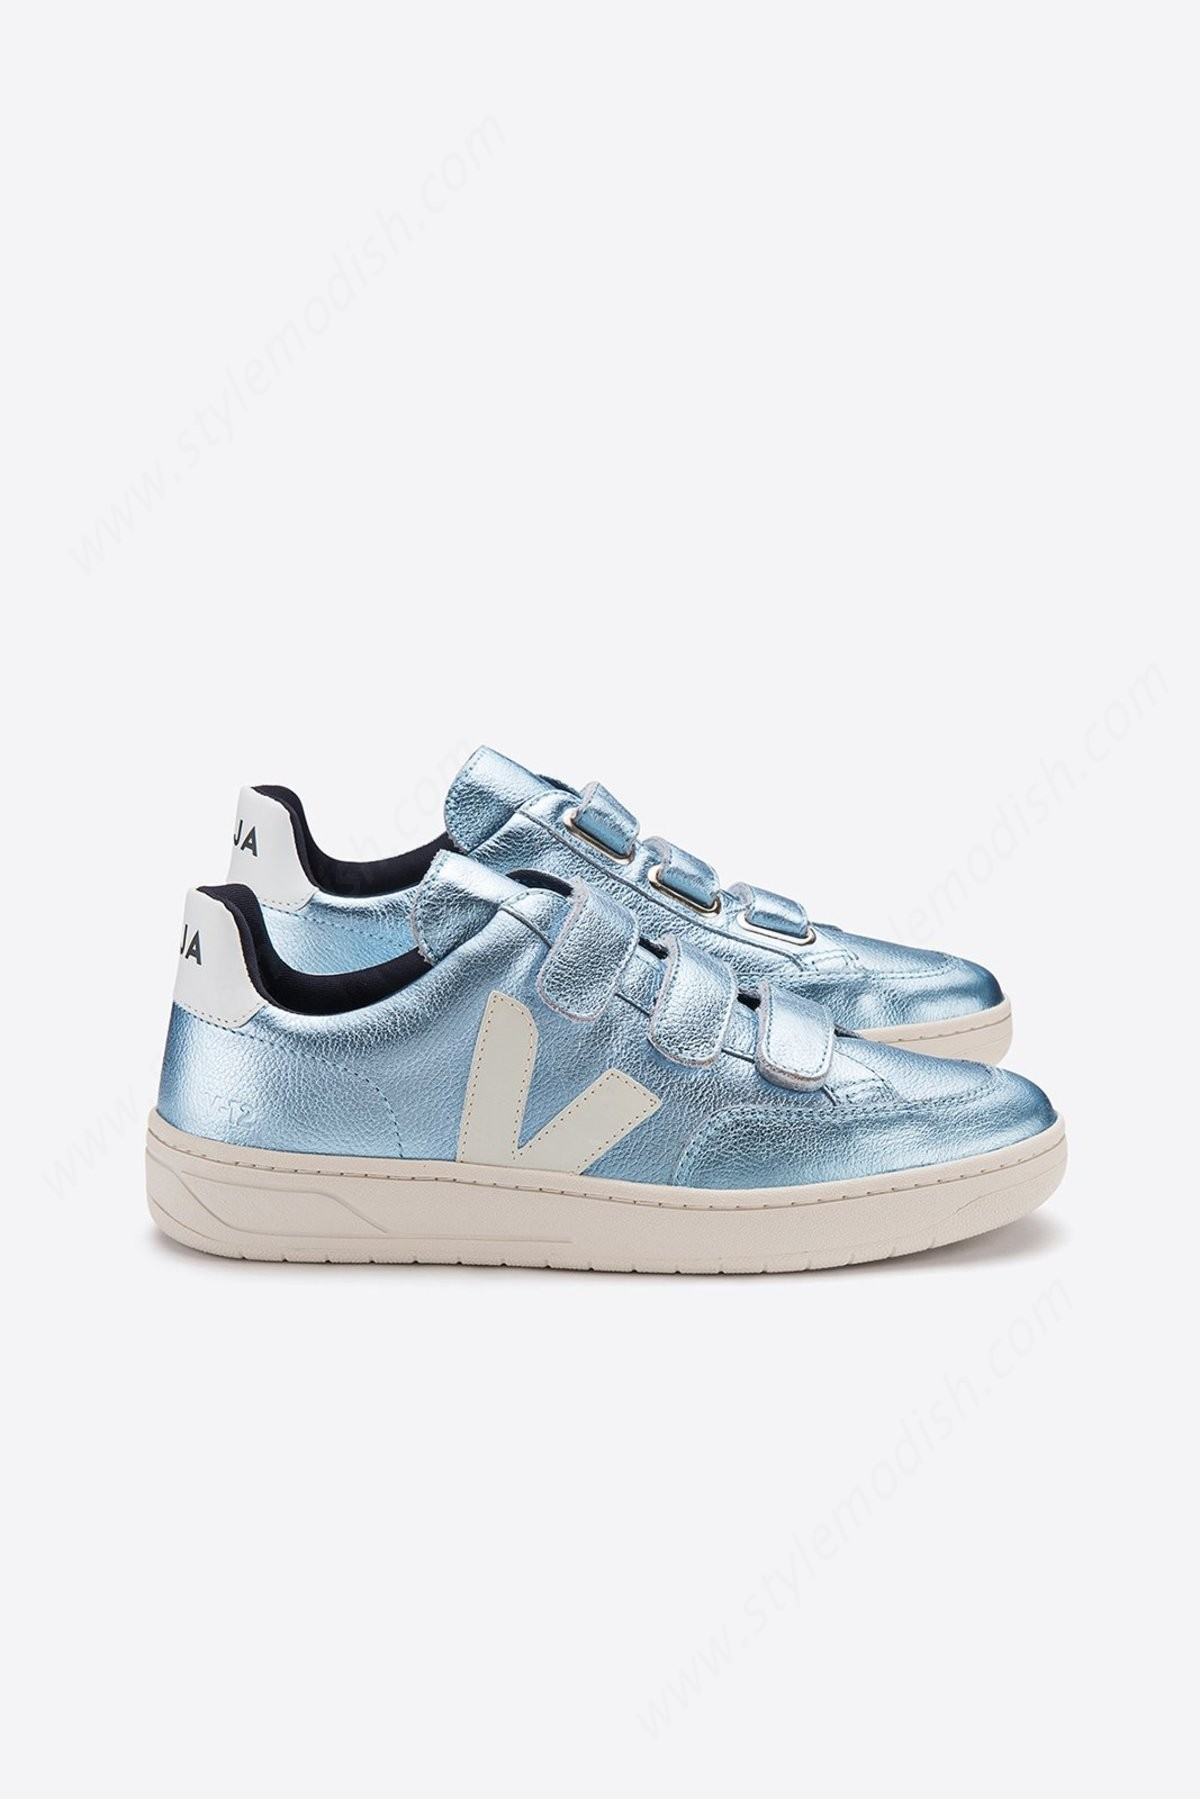 Lady's Veja V- Velcro Leather Iceberg Pierre Trainer - Metallic Blue - Lady's Veja V- Velcro Leather Iceberg Pierre Trainer - Metallic Blue